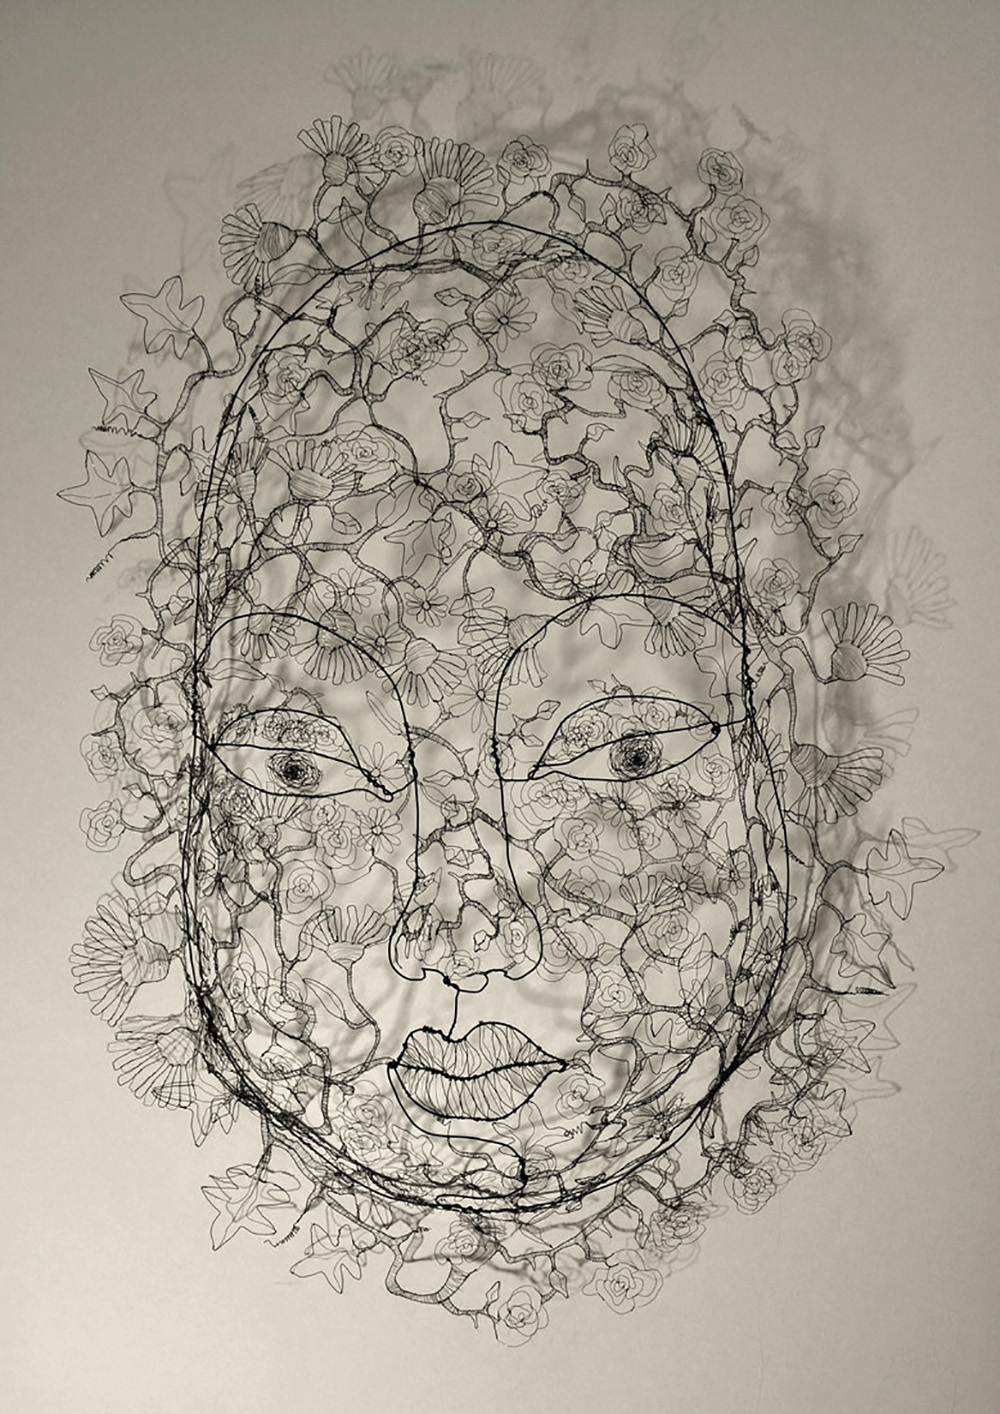 Head full of flowers in wire, Fiona Morley